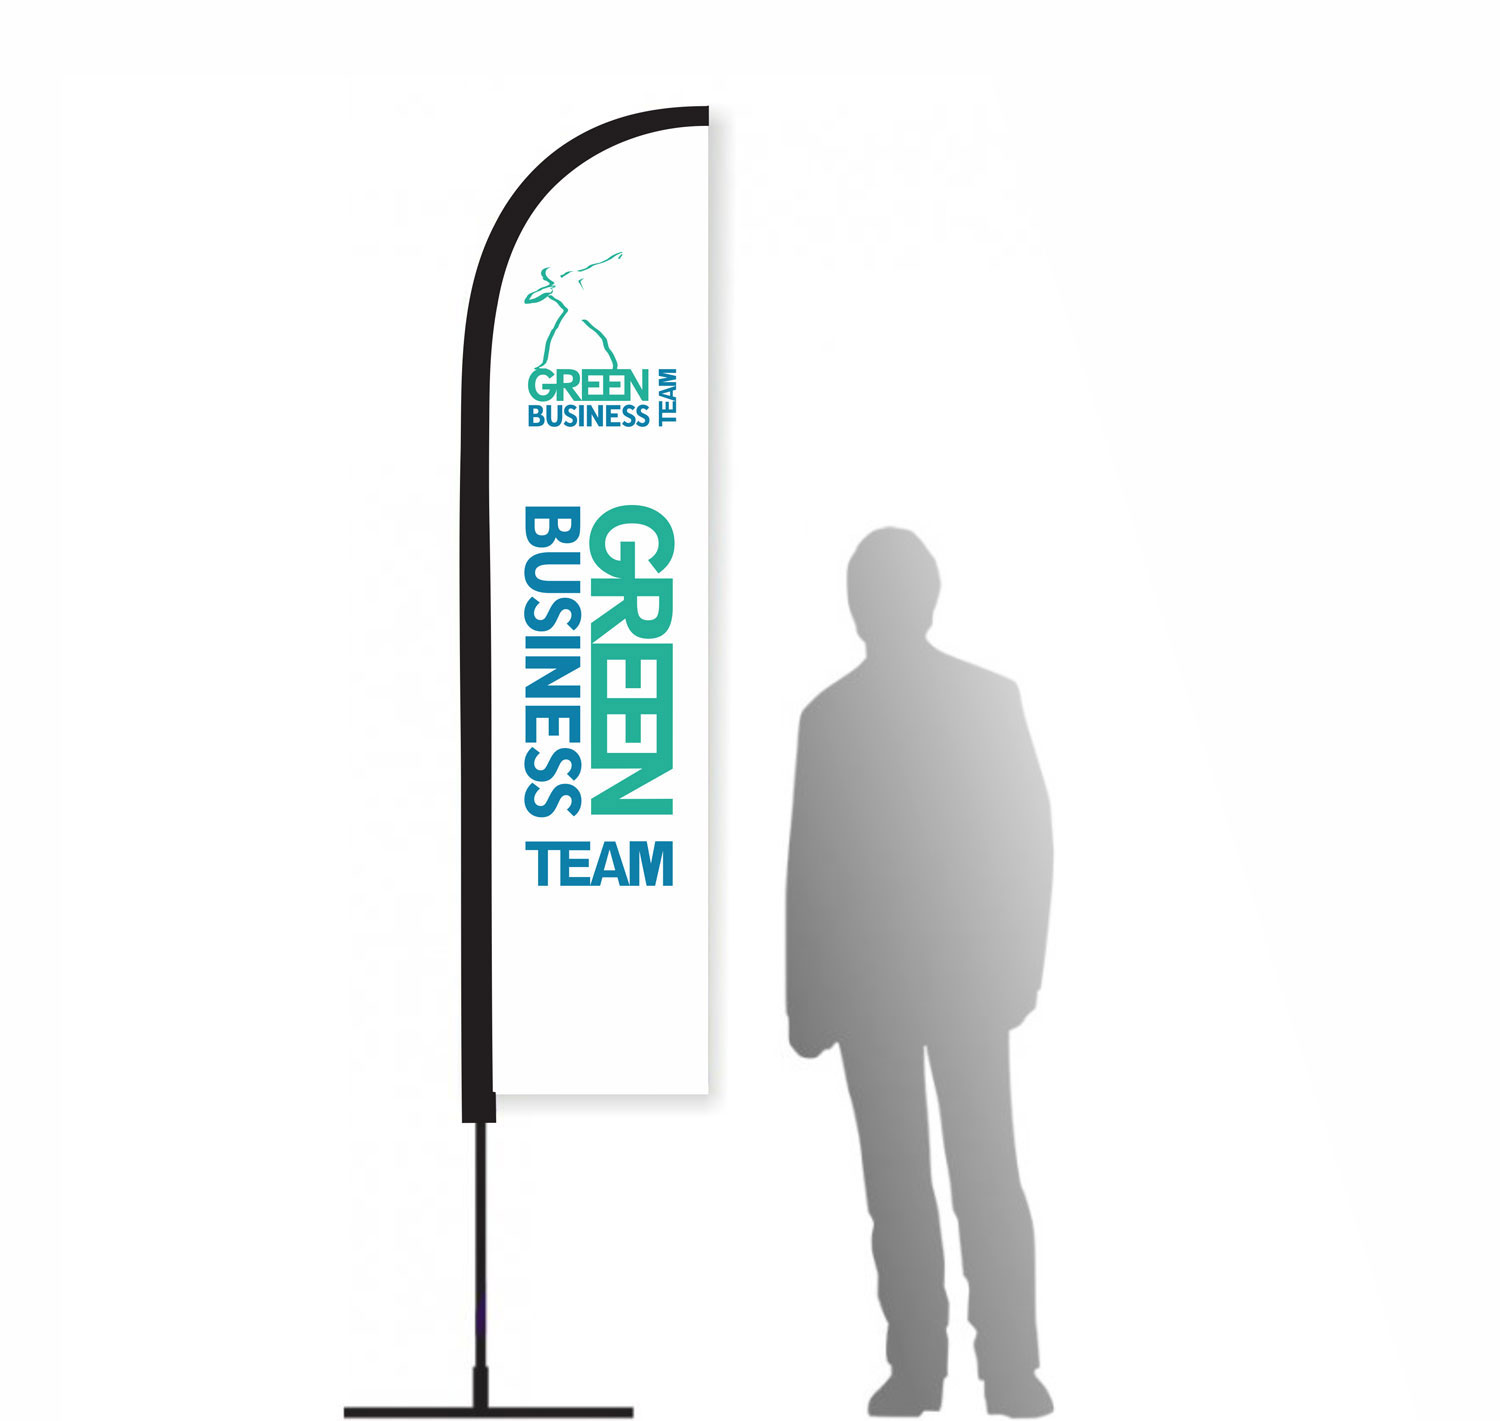 Rollup-GreenBusinessTeam-by-Lanagraphic